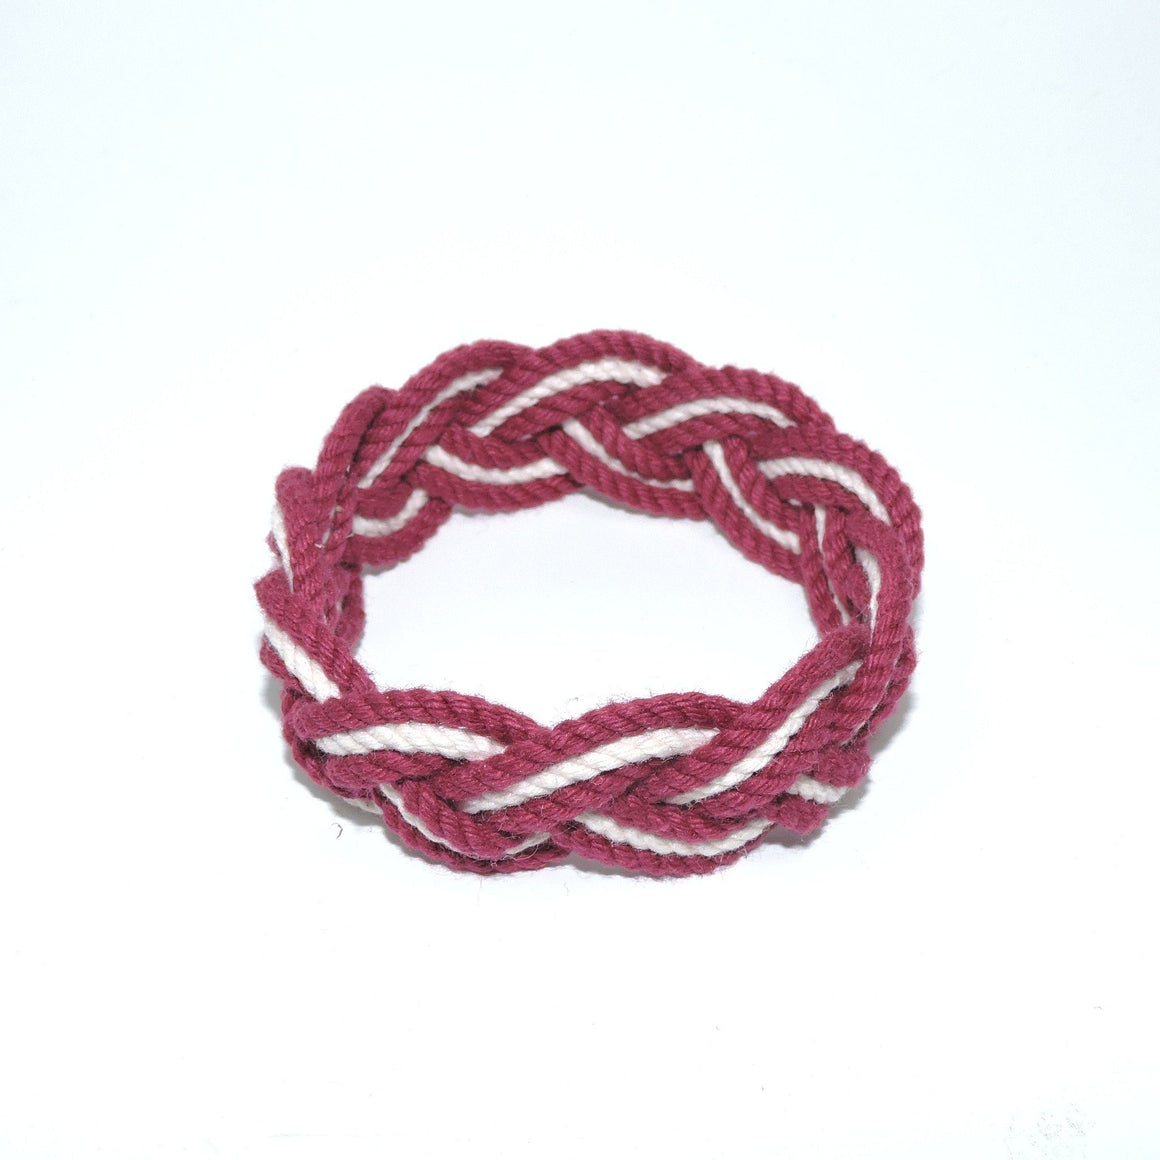 Striped Sailor Bracelet, Various Burgundy - New! - Mystic Knotwork  - 5